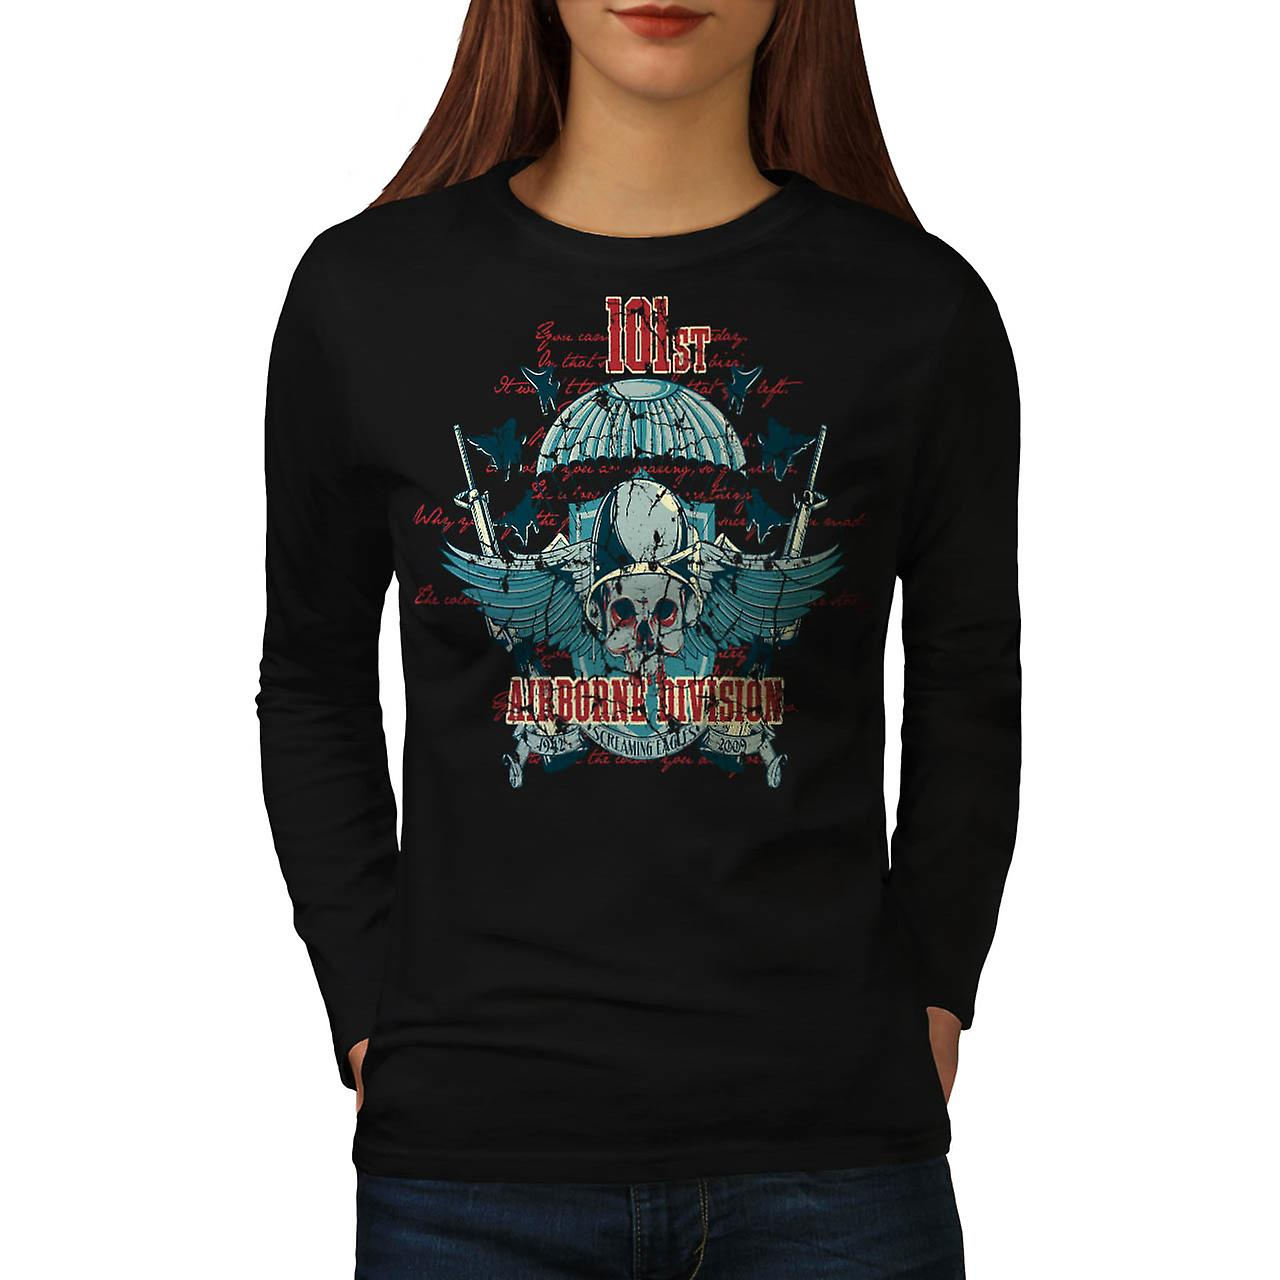 Airborne Division Fly War Flight Women Black Long Sleeve T-shirt | Wellcoda